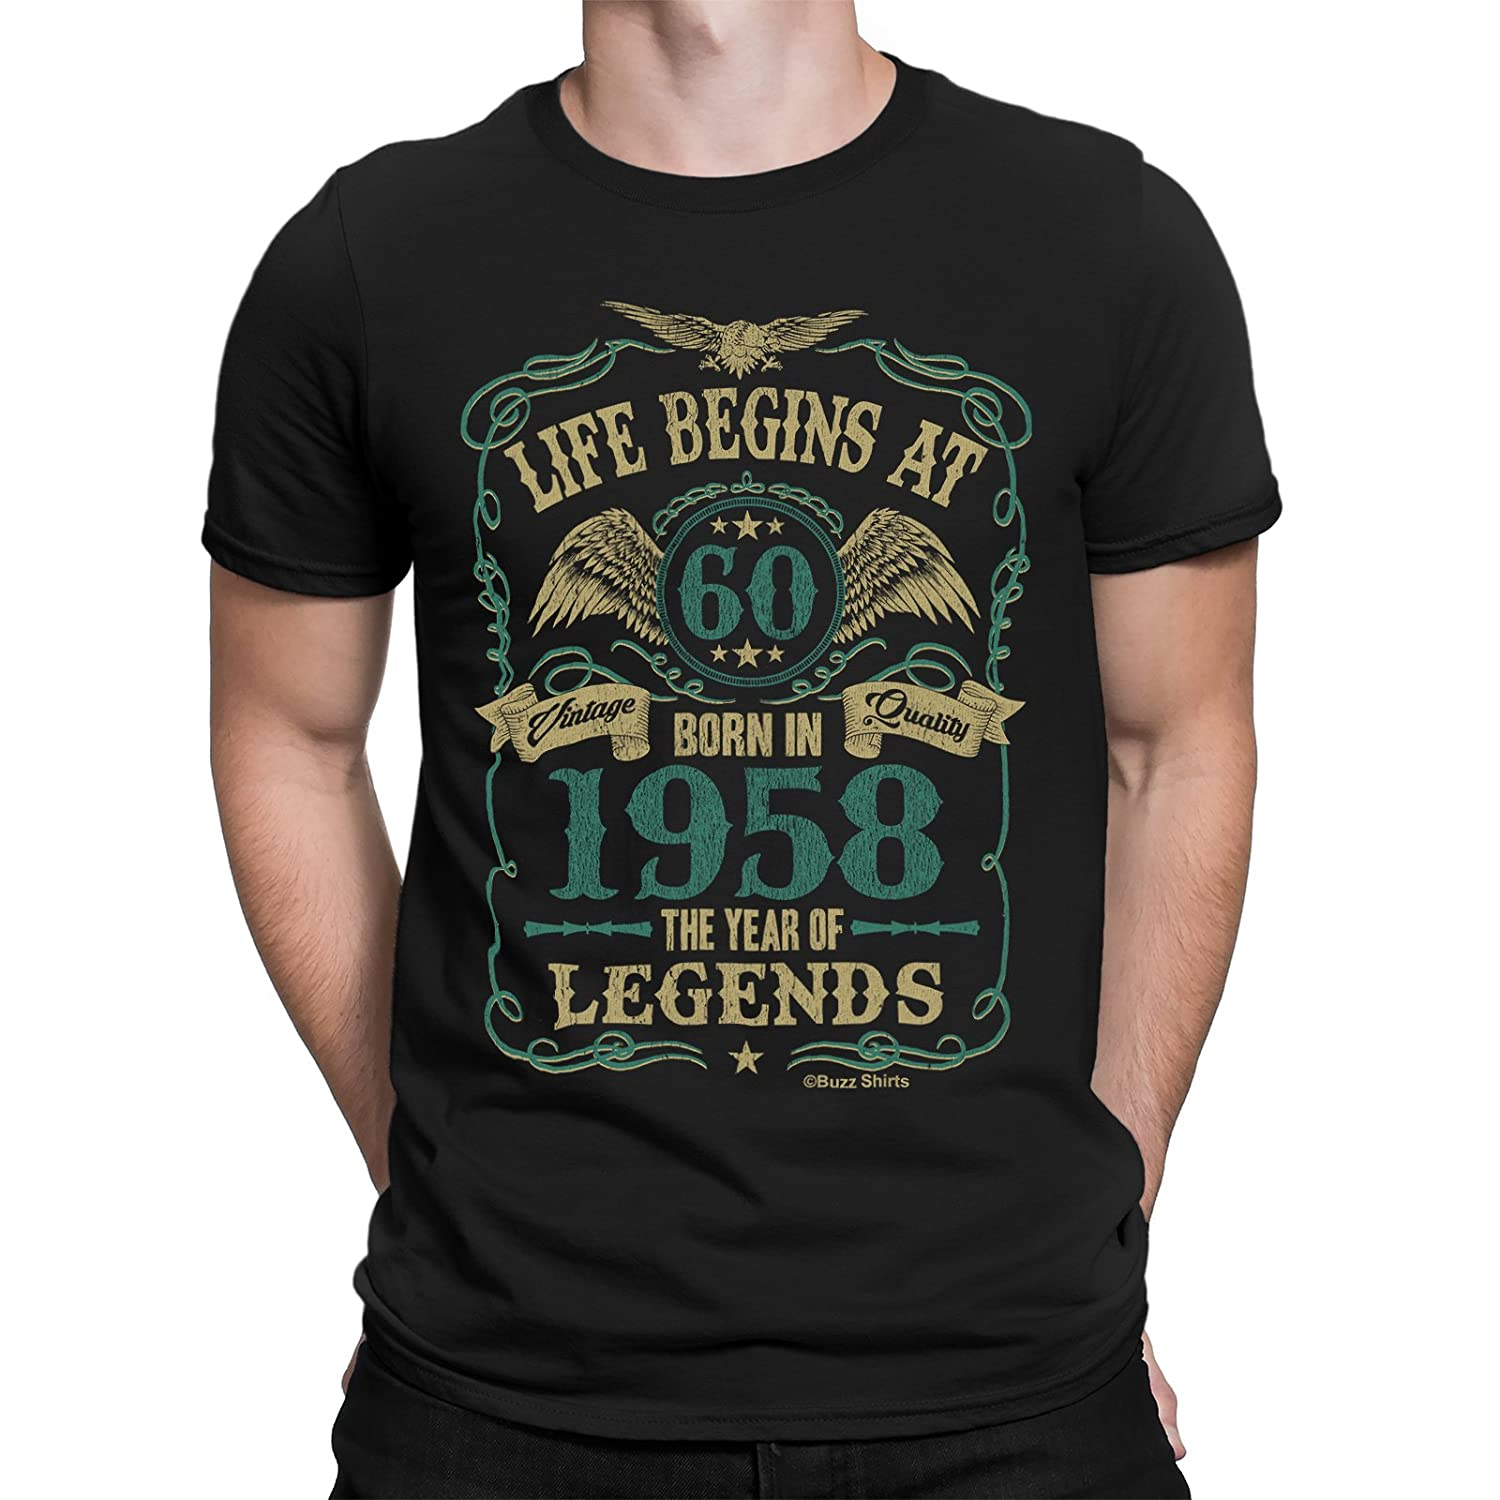 Buzz Shirts Life Begins at 60 Mens T-Shirt - Born in 1958 Year of Legends 60th Birthday Gift - by